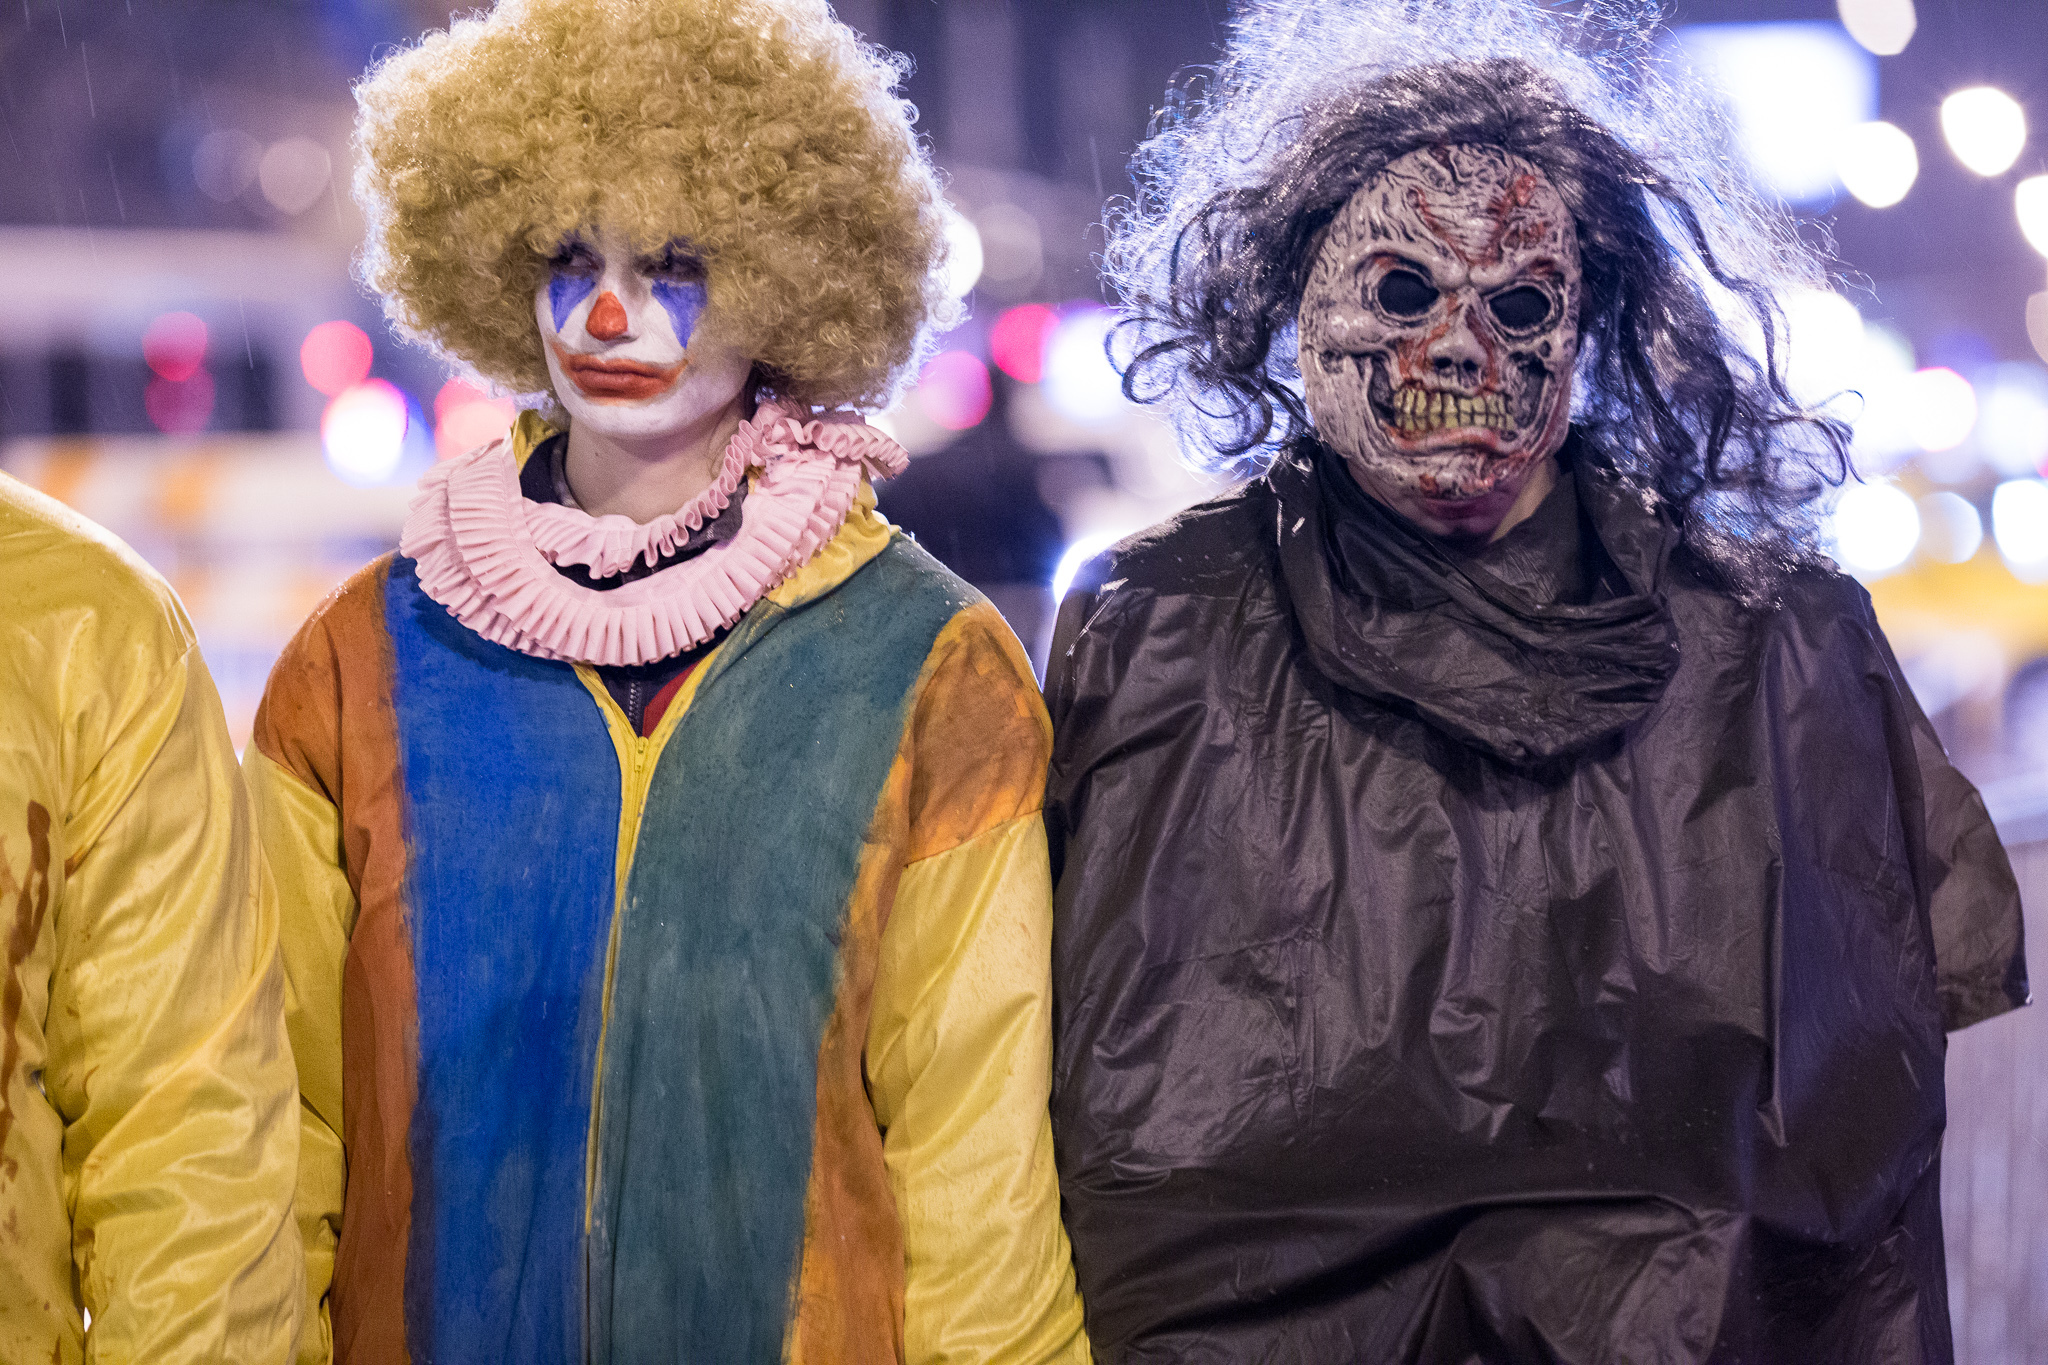 Spooky costumes and clever getups fill the streets of Boystown at the Northalsted Halloween Parade, October 31, 2014.